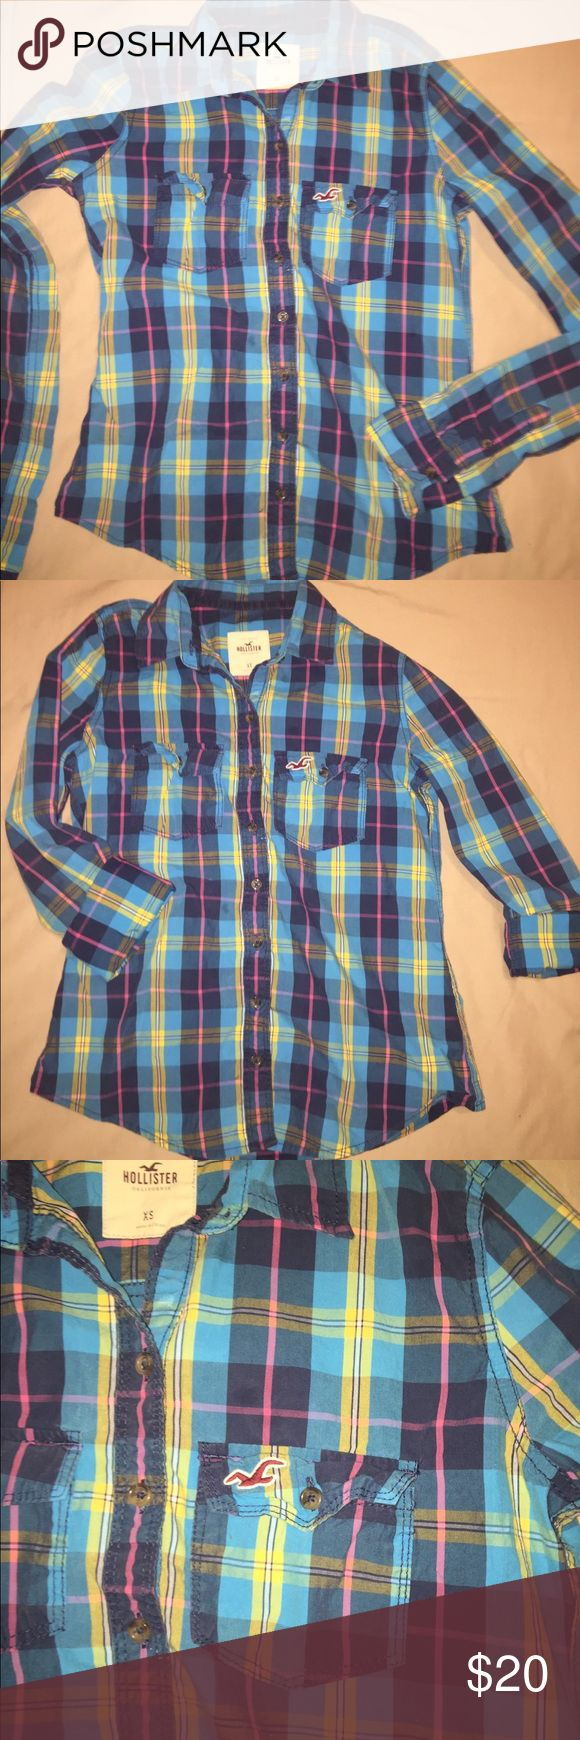 Women's Hollister Plaid Top Size Small Beautiful women's Hollister button down. Cute plaid design in bright vibrant colors. Size small in excellent condition. Wear with the sleeves down in the winter or roll them up for a cute spring look. Comes from a pet free smoke free home. Hollister Tops Button Down Shirts